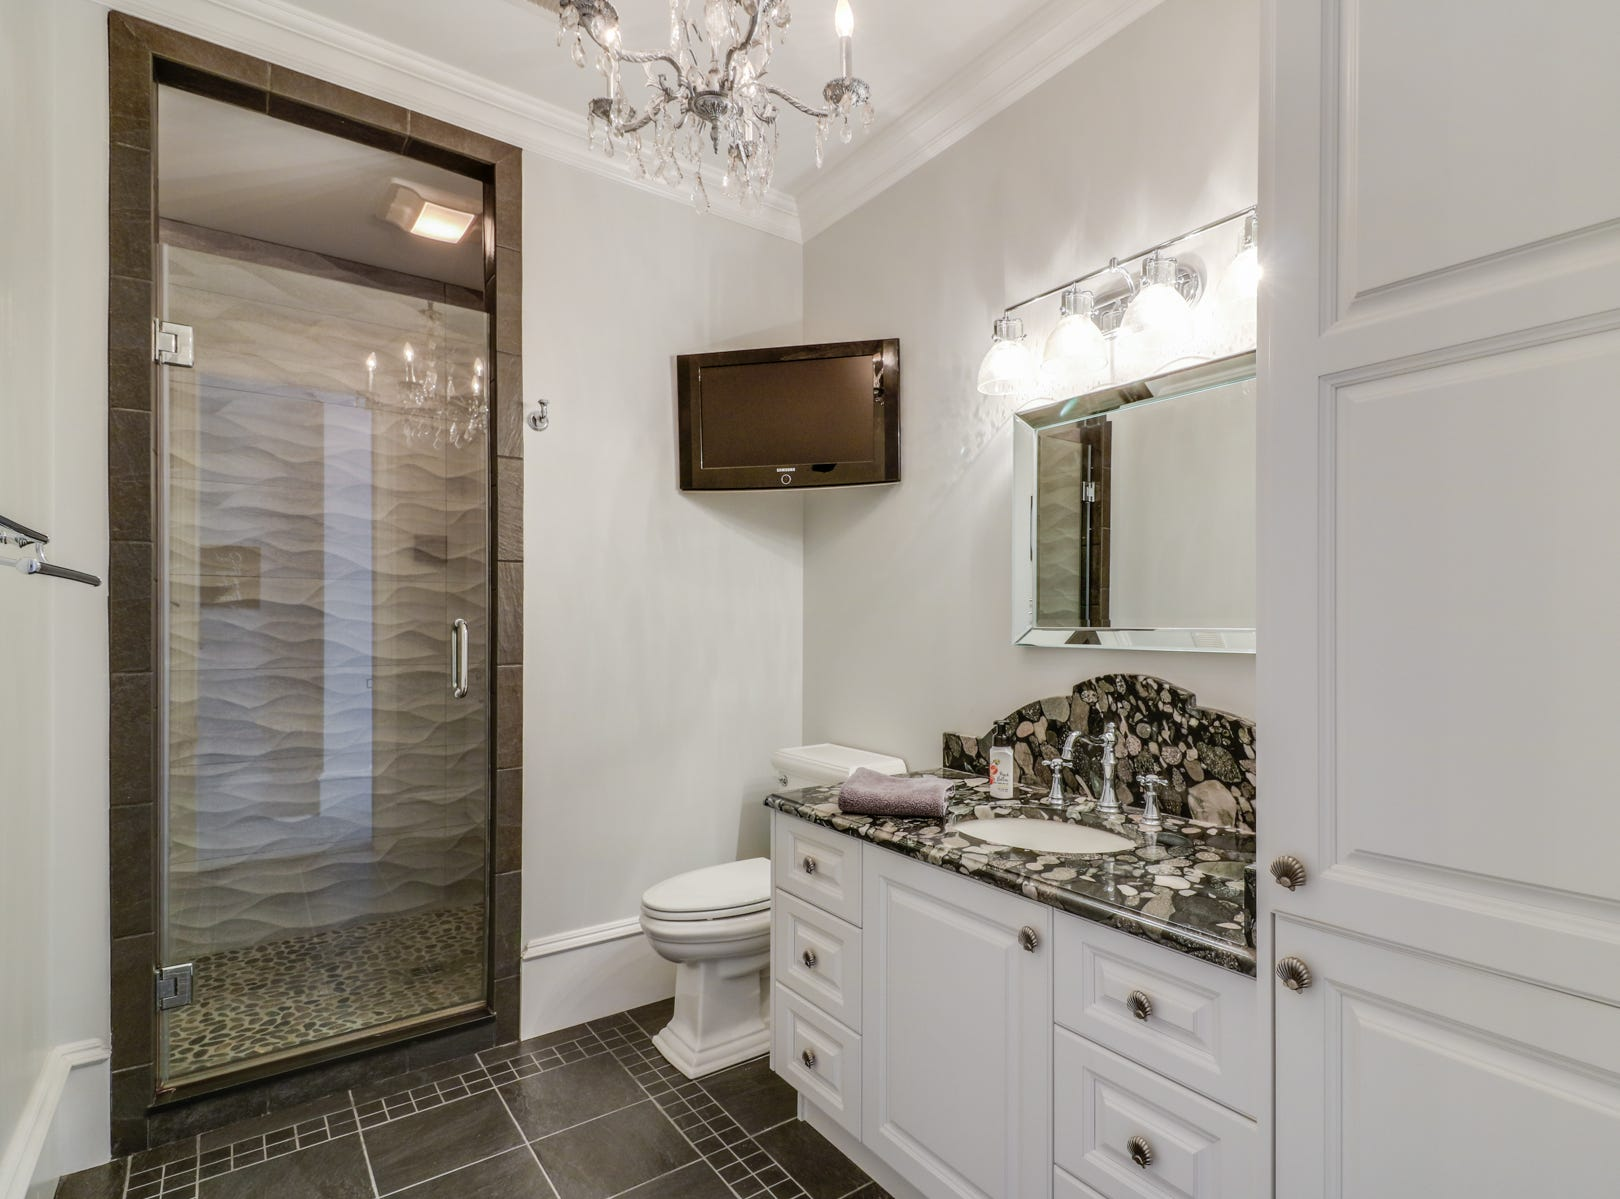 The bathrooms at 18 Ocean Drive in North Shores match the careful thought put into other details.